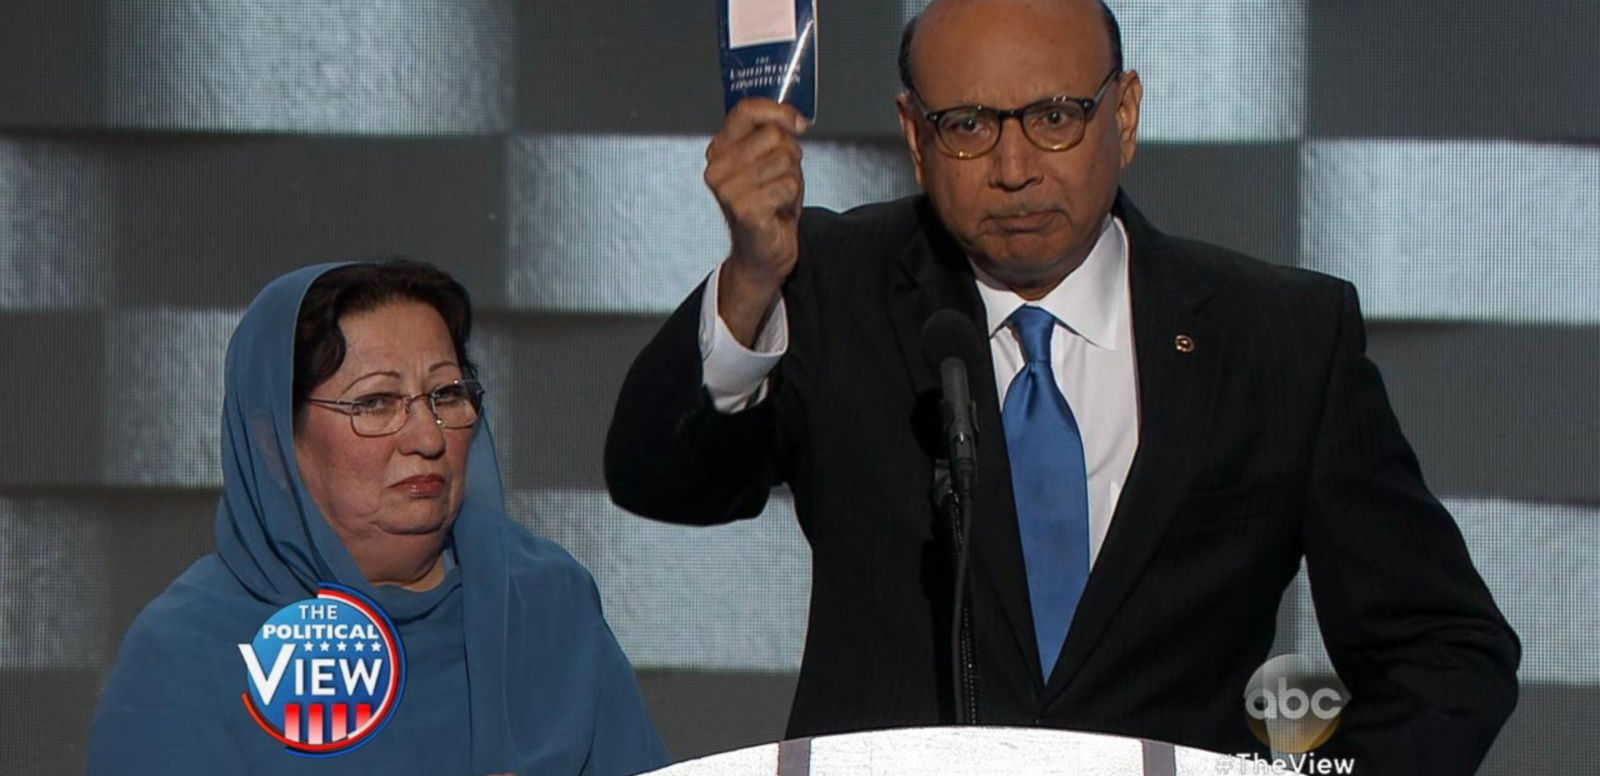 VIDEO: Father of Muslim Fallen Soldier Blasts Trump at DNC